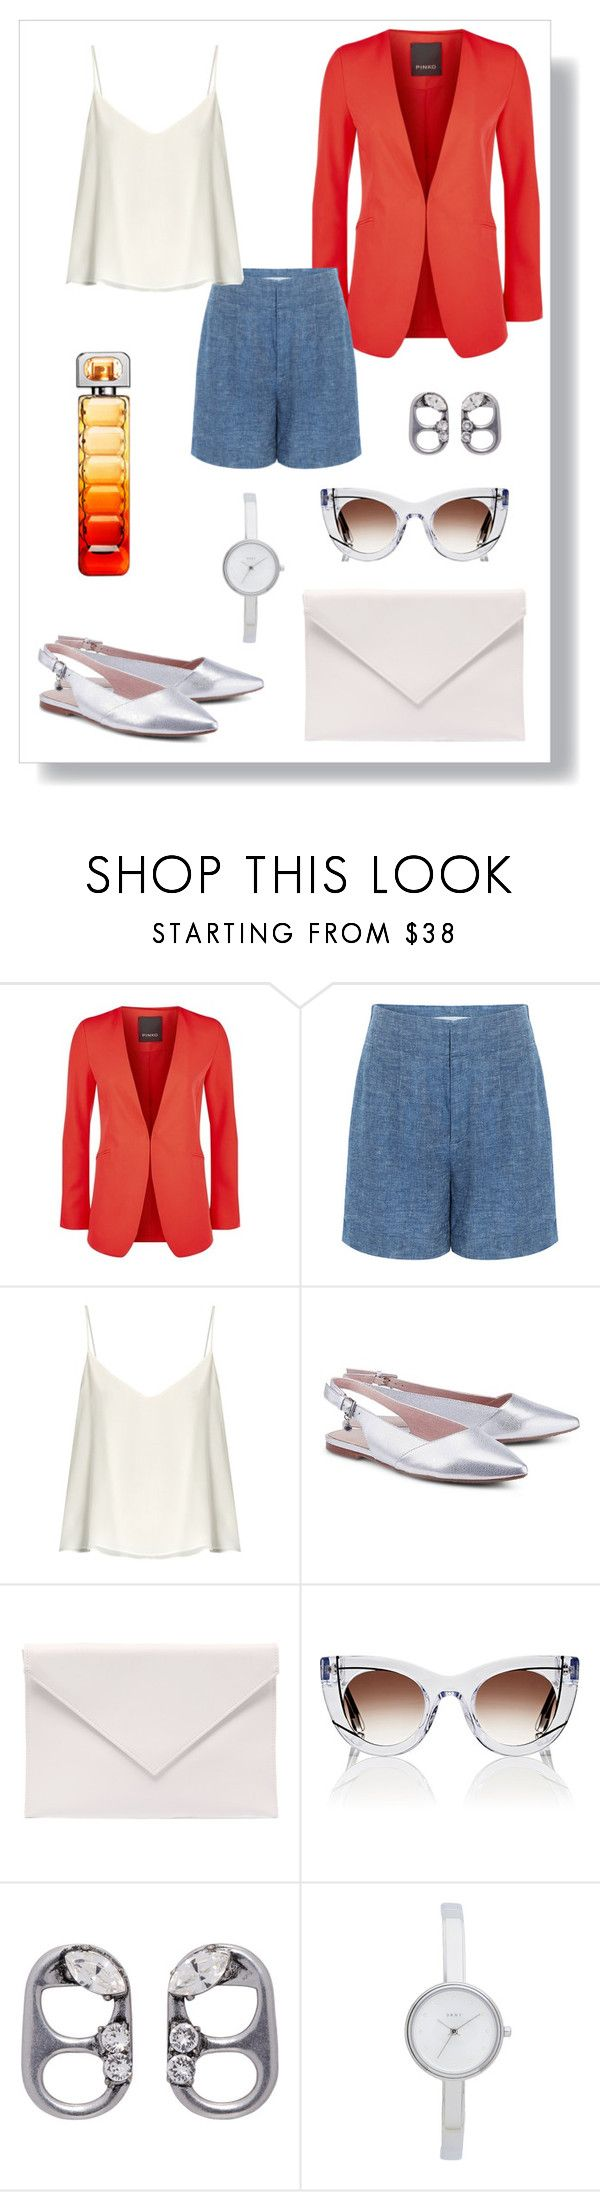 """""""№ 475"""" by tigrpuh ❤ liked on Polyvore featuring Pinko, 10 Crosby Derek Lam, Raey, Verali, Thierry Lasry, Marc Jacobs, DKNY and BOSS Orange"""